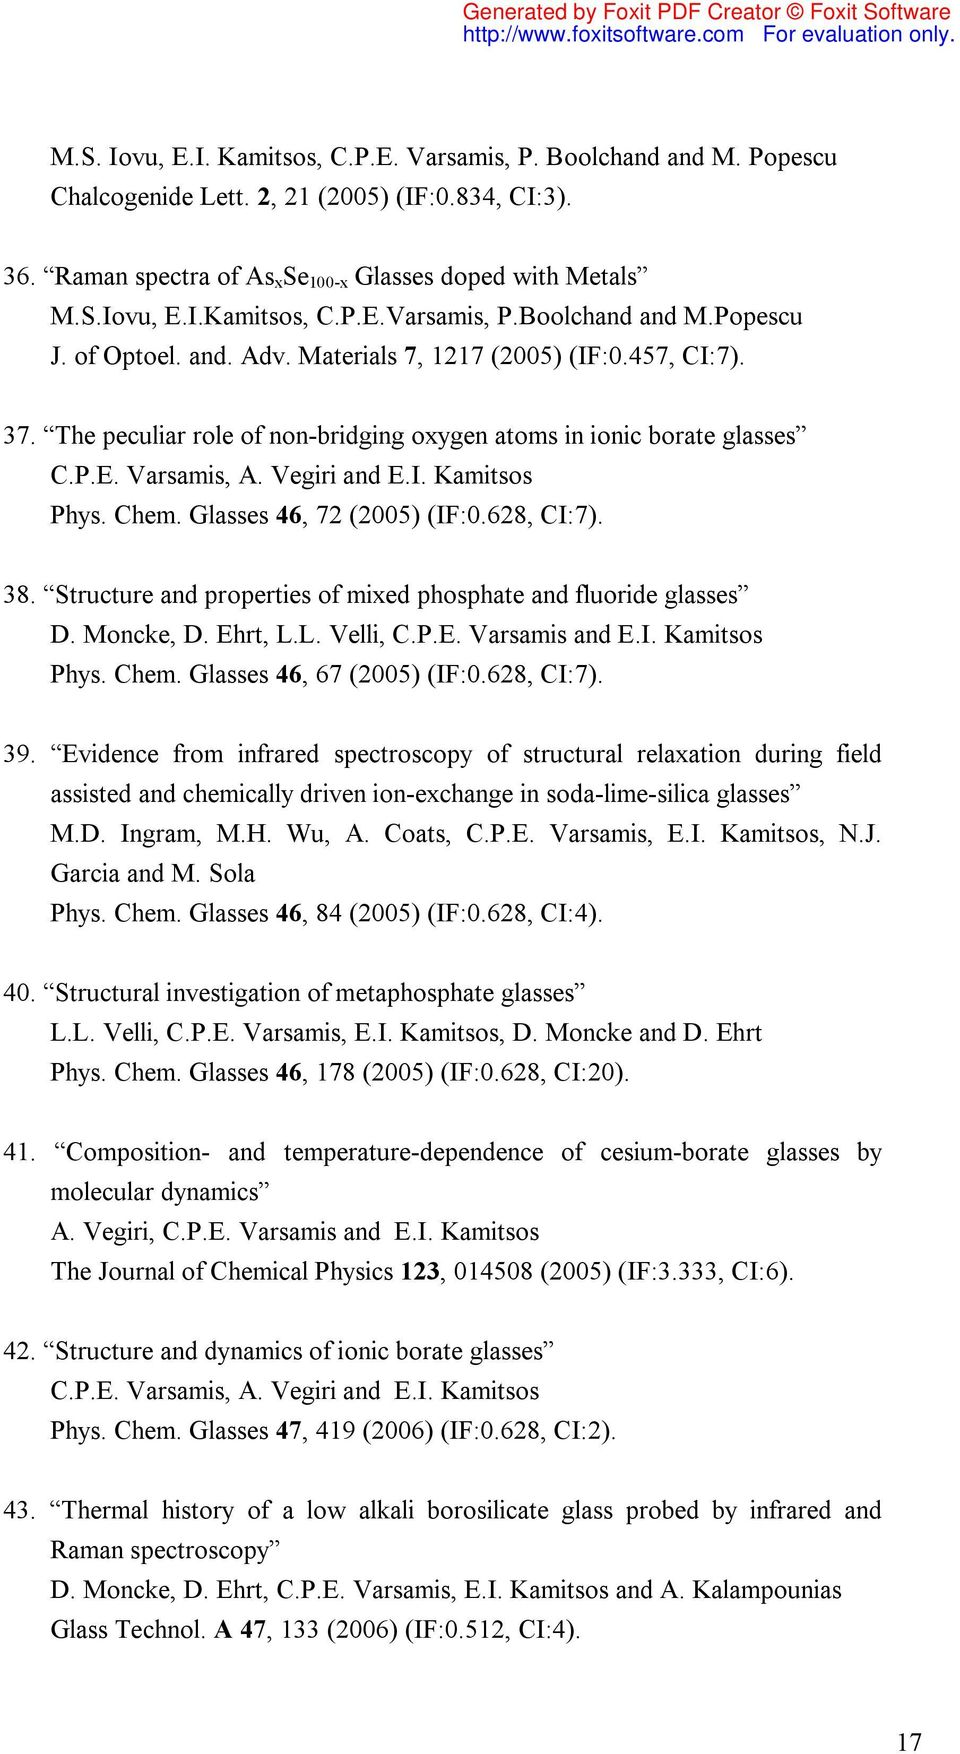 Glasses 46, 72 (2005) (IF:0.628, CI:7). 38. Structure and properties of mixed phosphate and fluoride glasses D. Moncke, D. Ehrt, L.L. Velli, C.P.E. Varsamis and E.I. Kamitsos Phys. Chem.